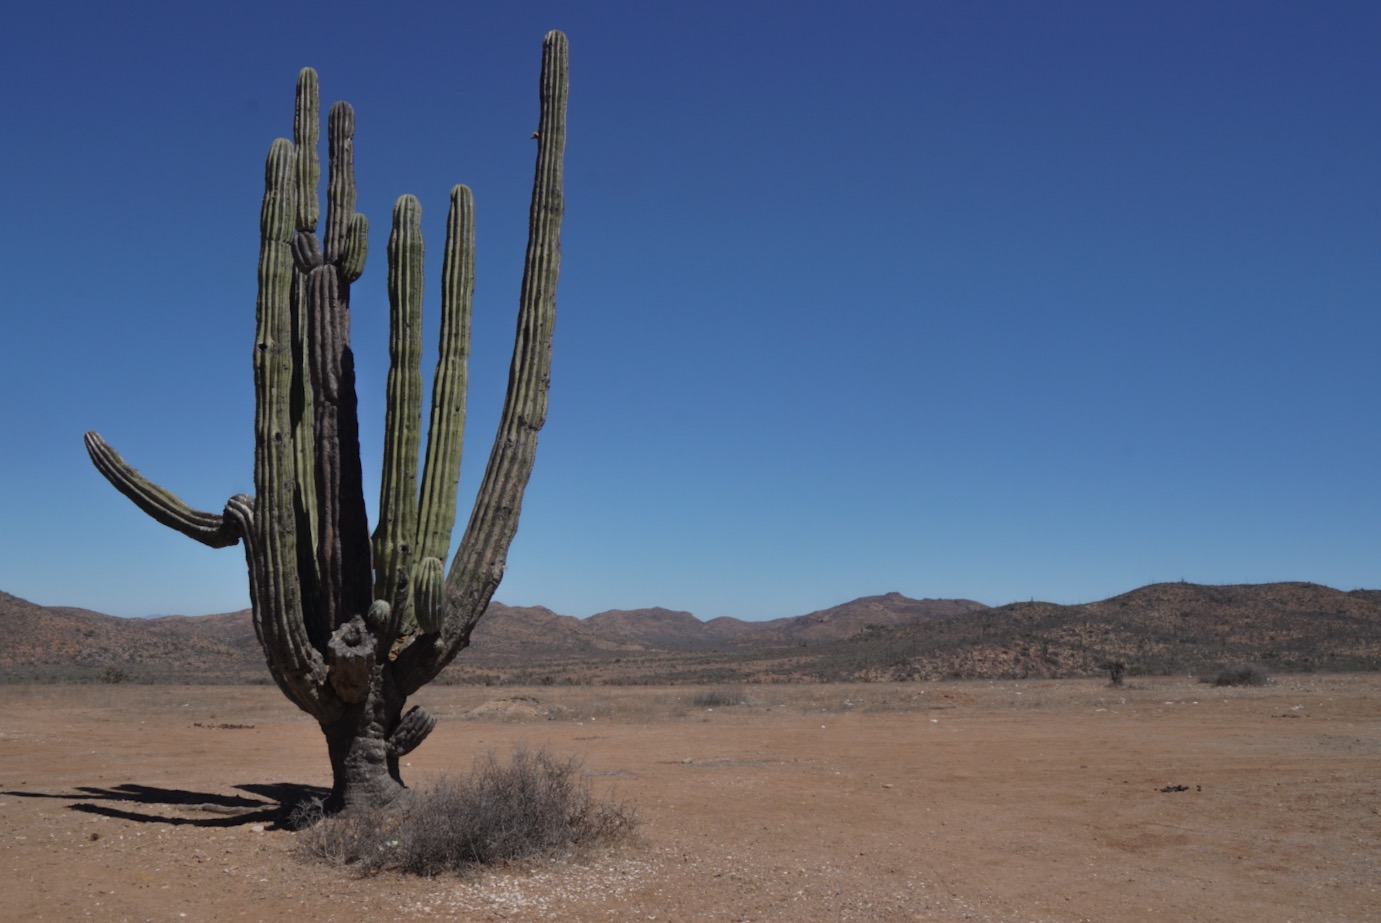 A huge cactus in Baja